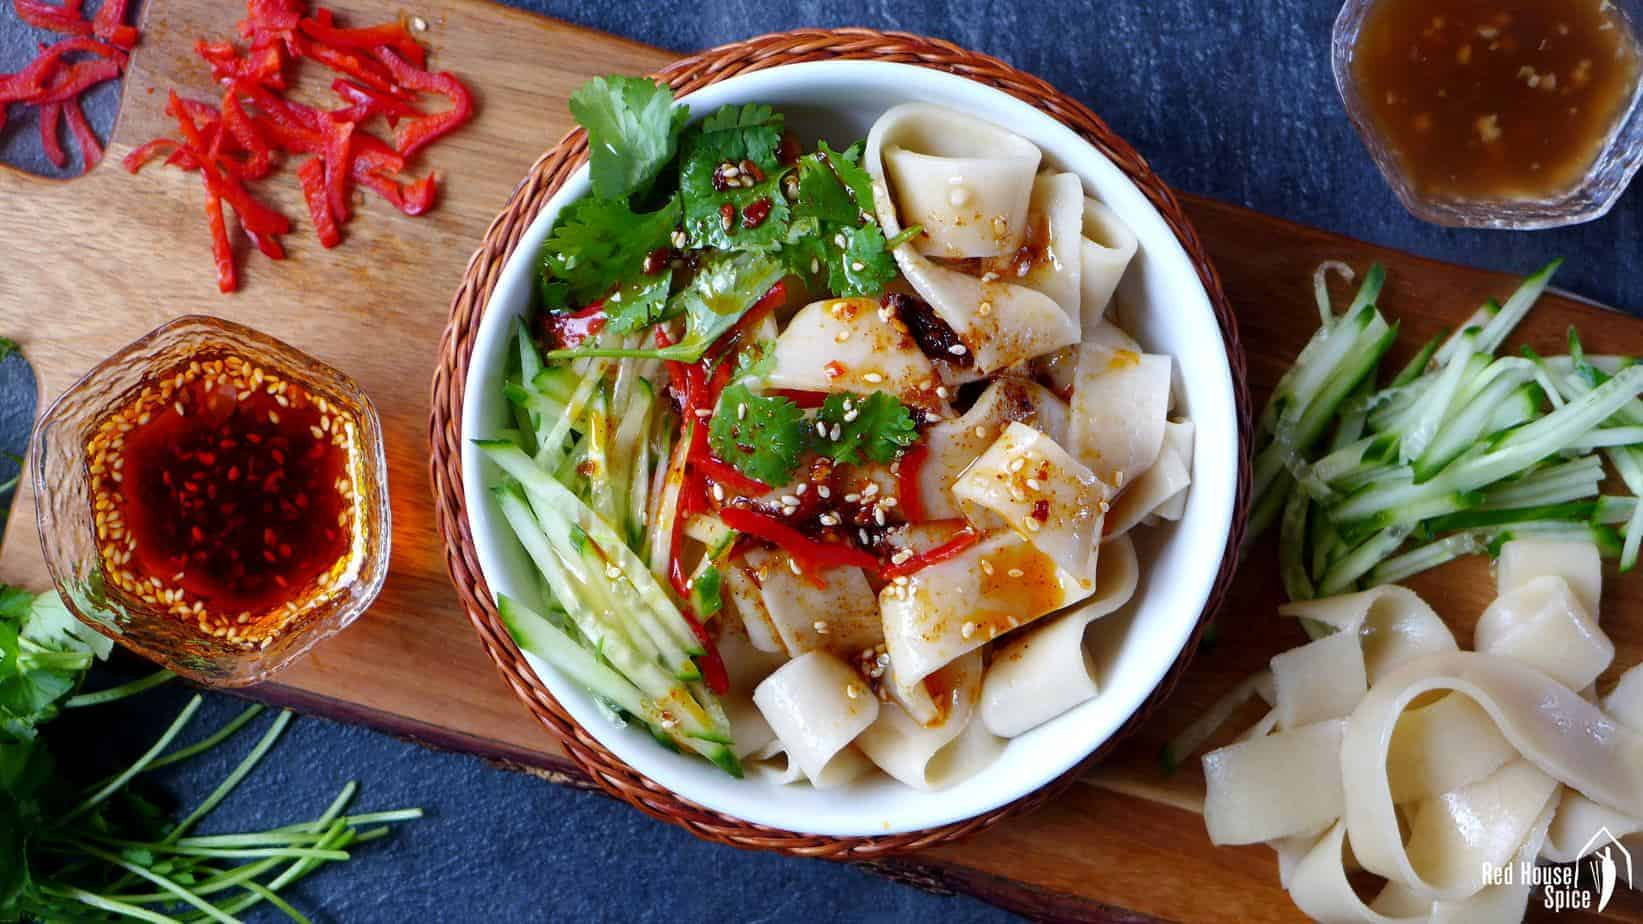 Liang Pi: Cold skin noodles, the simple way (凉皮)